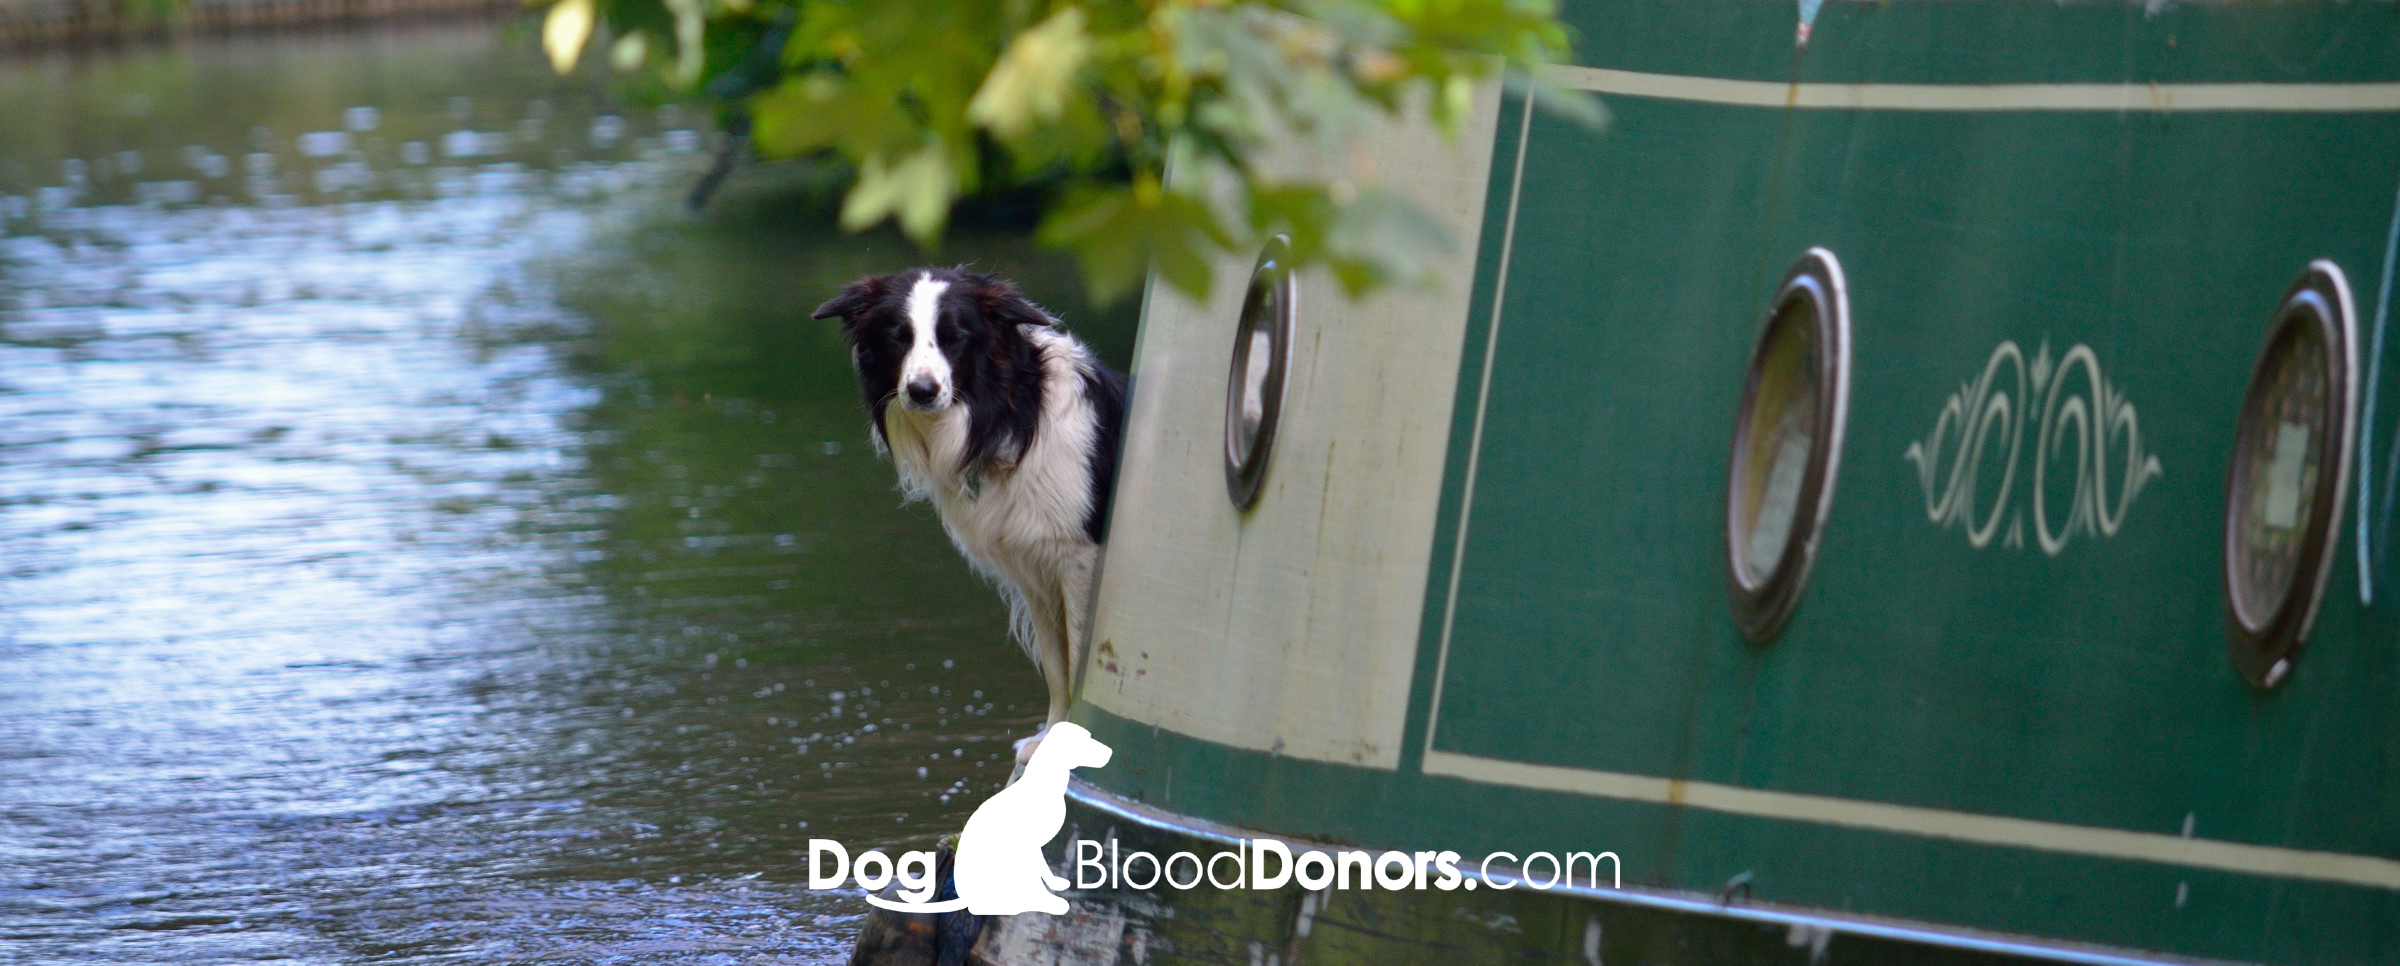 Dog Blood Donors